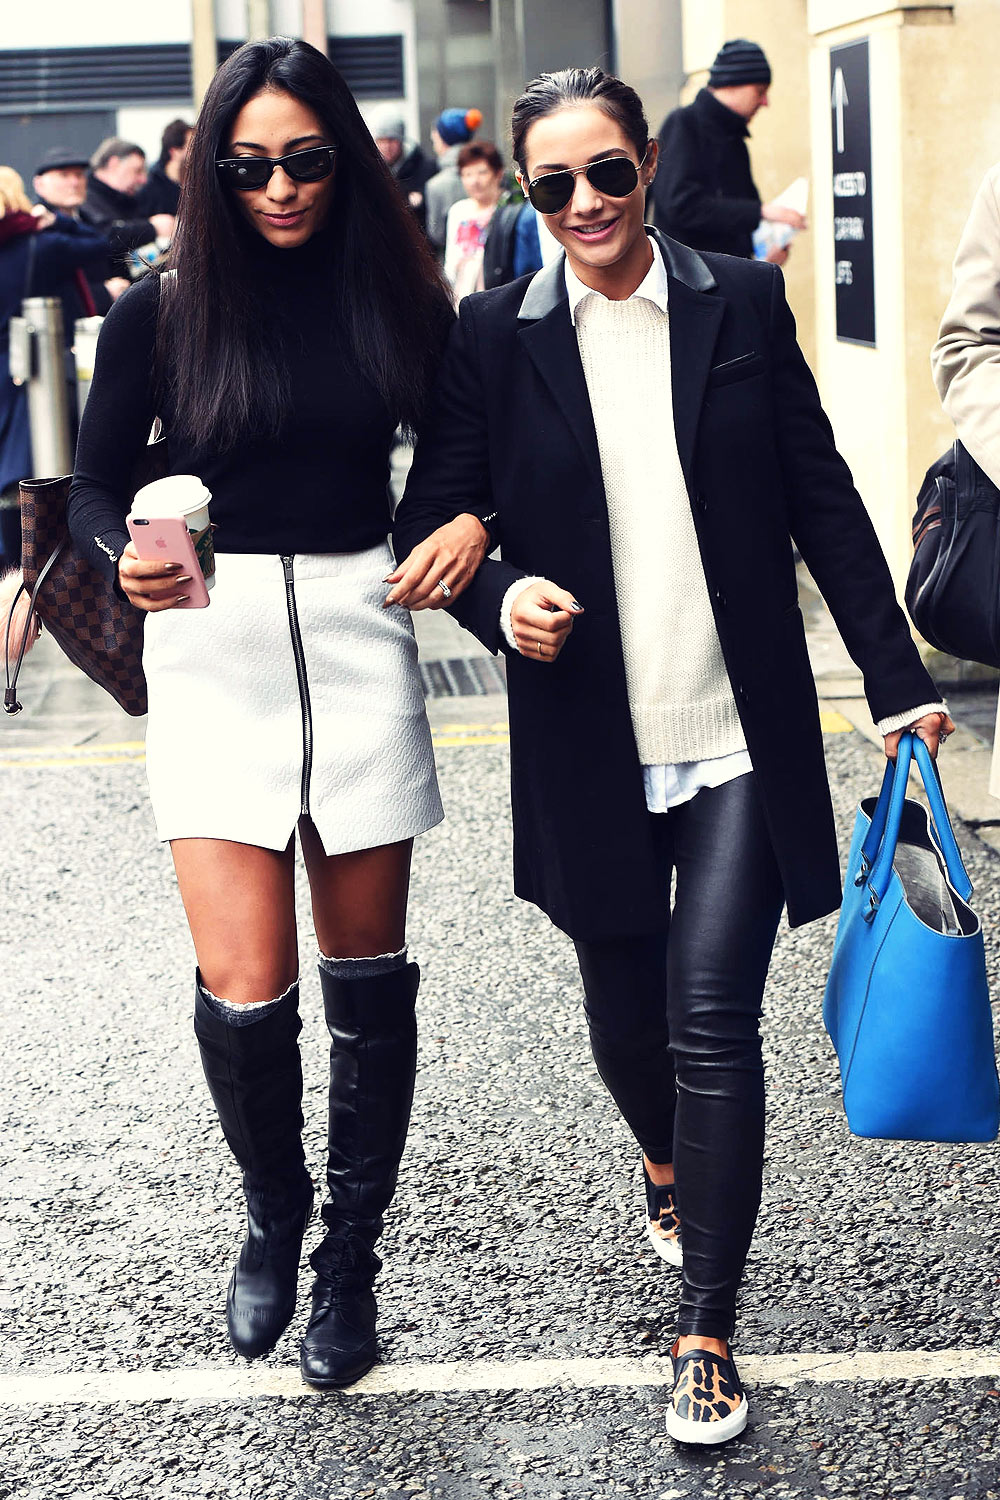 Frankie Bridge And Karen Clifton Leaving Their Hotel In